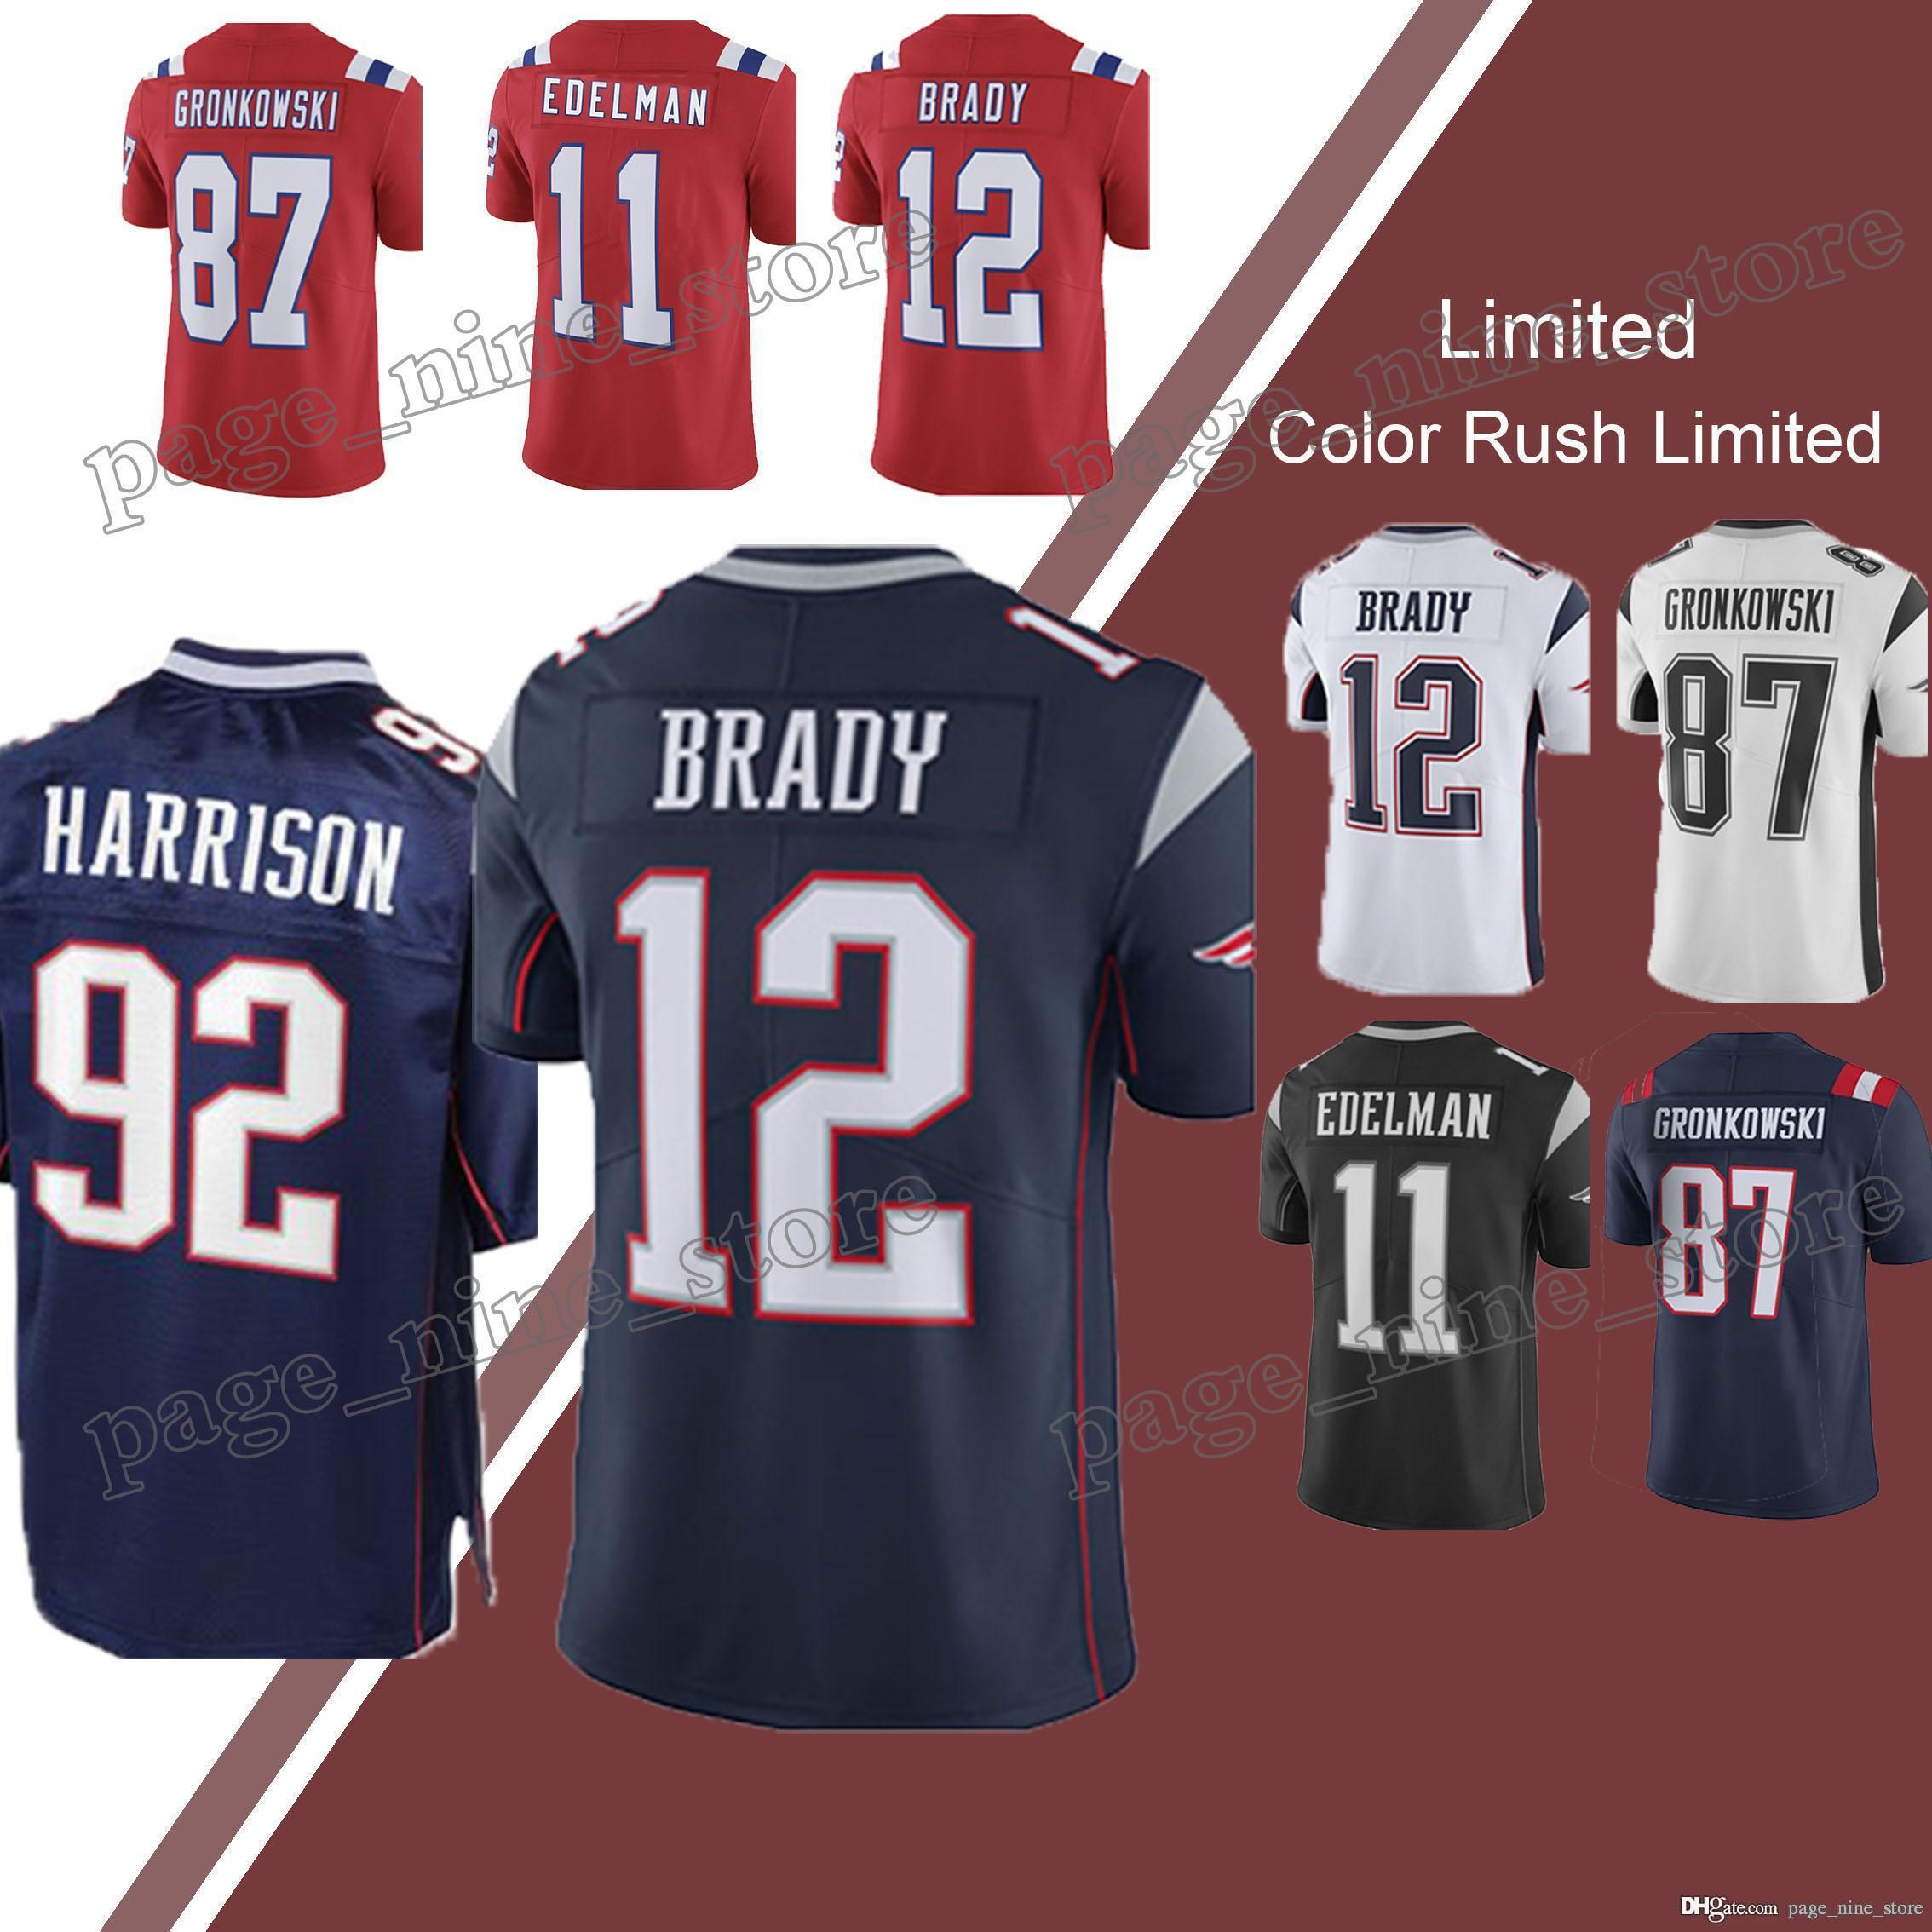 official photos 11365 3eac1 store tom brady limited color rush jersey 6a36d 8361a